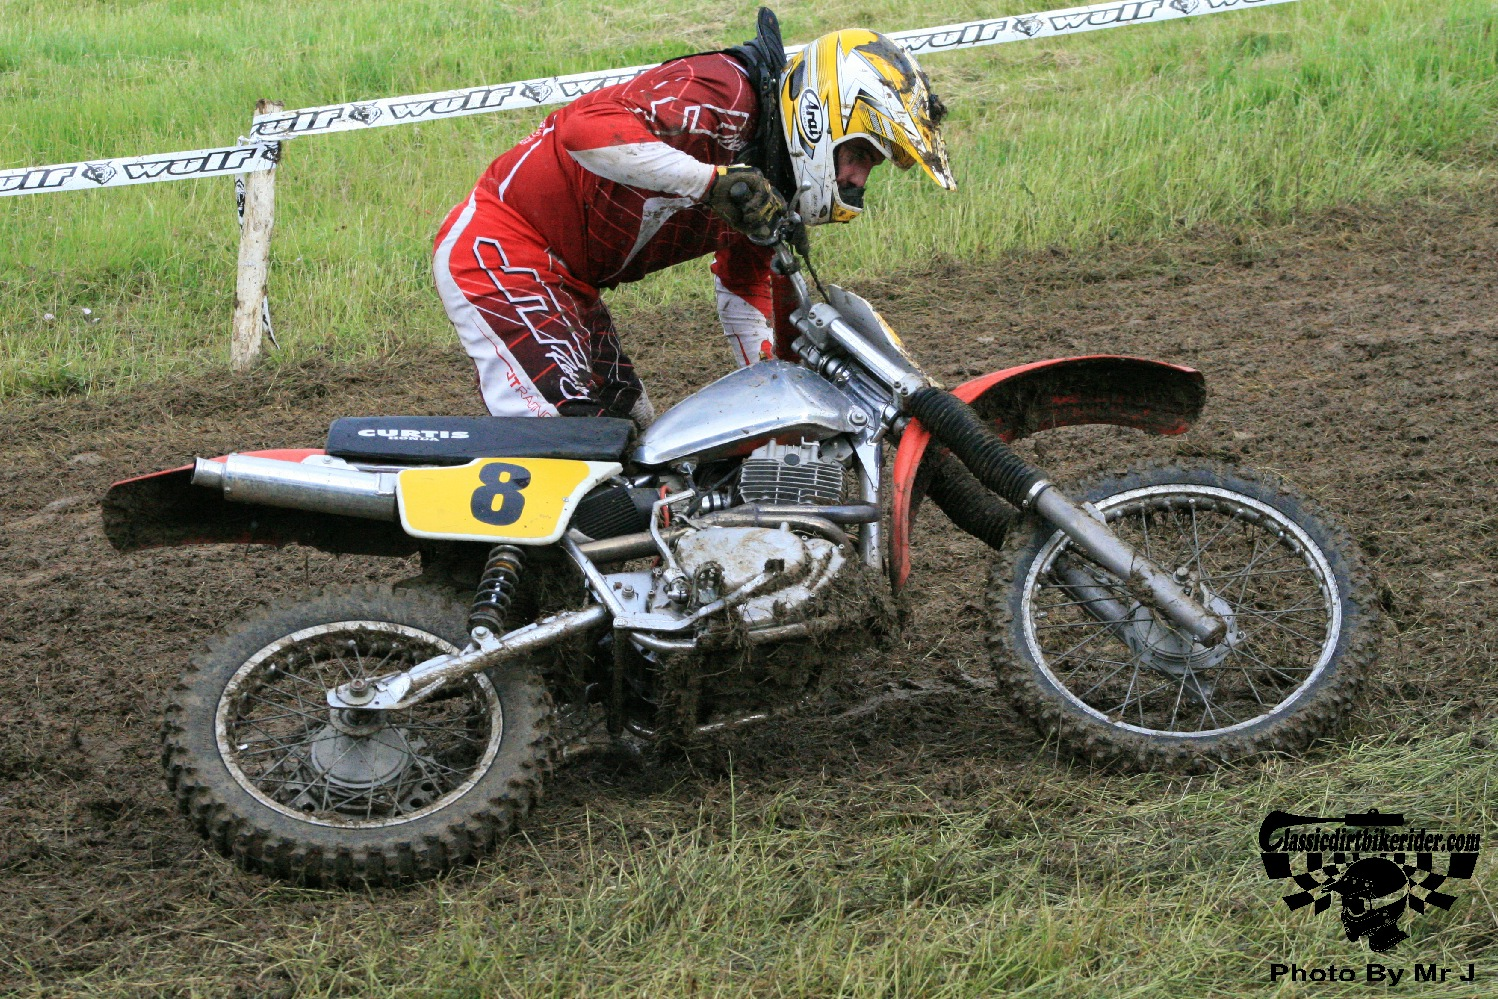 king of the castle 2015 photos Farleigh Castle twinshock motocross classicdirtbikerider.com 114